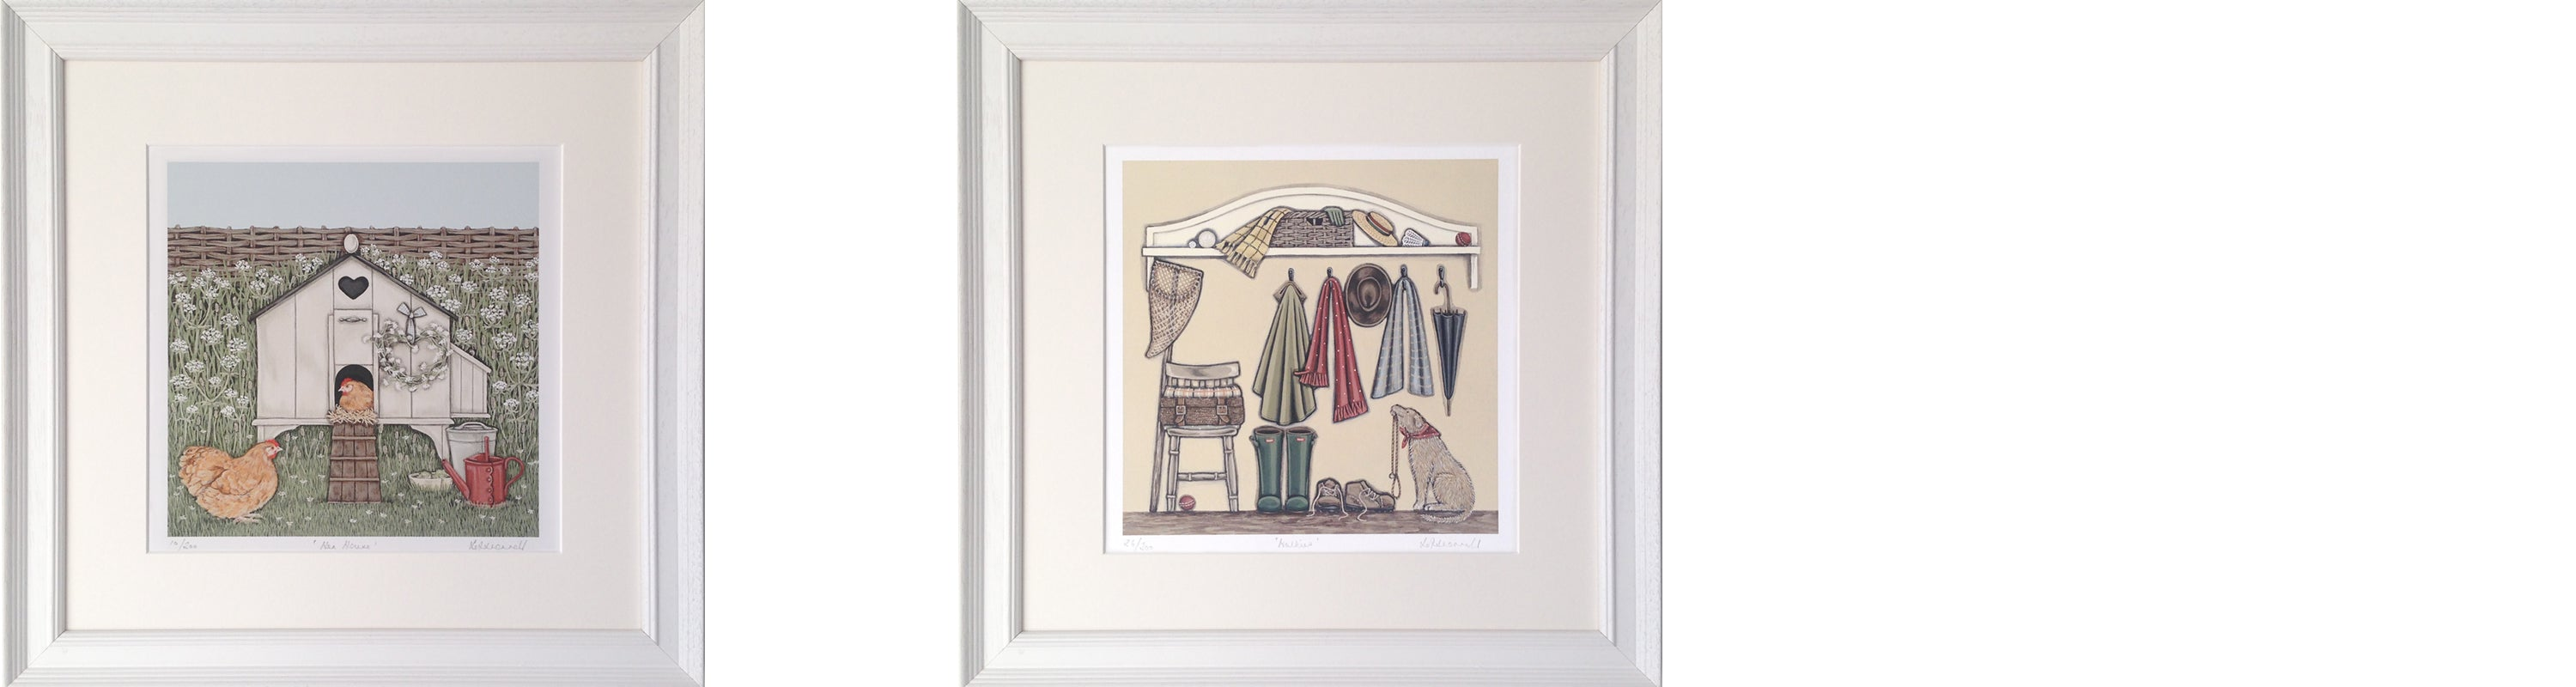 Hen House Walkies Framed Prints